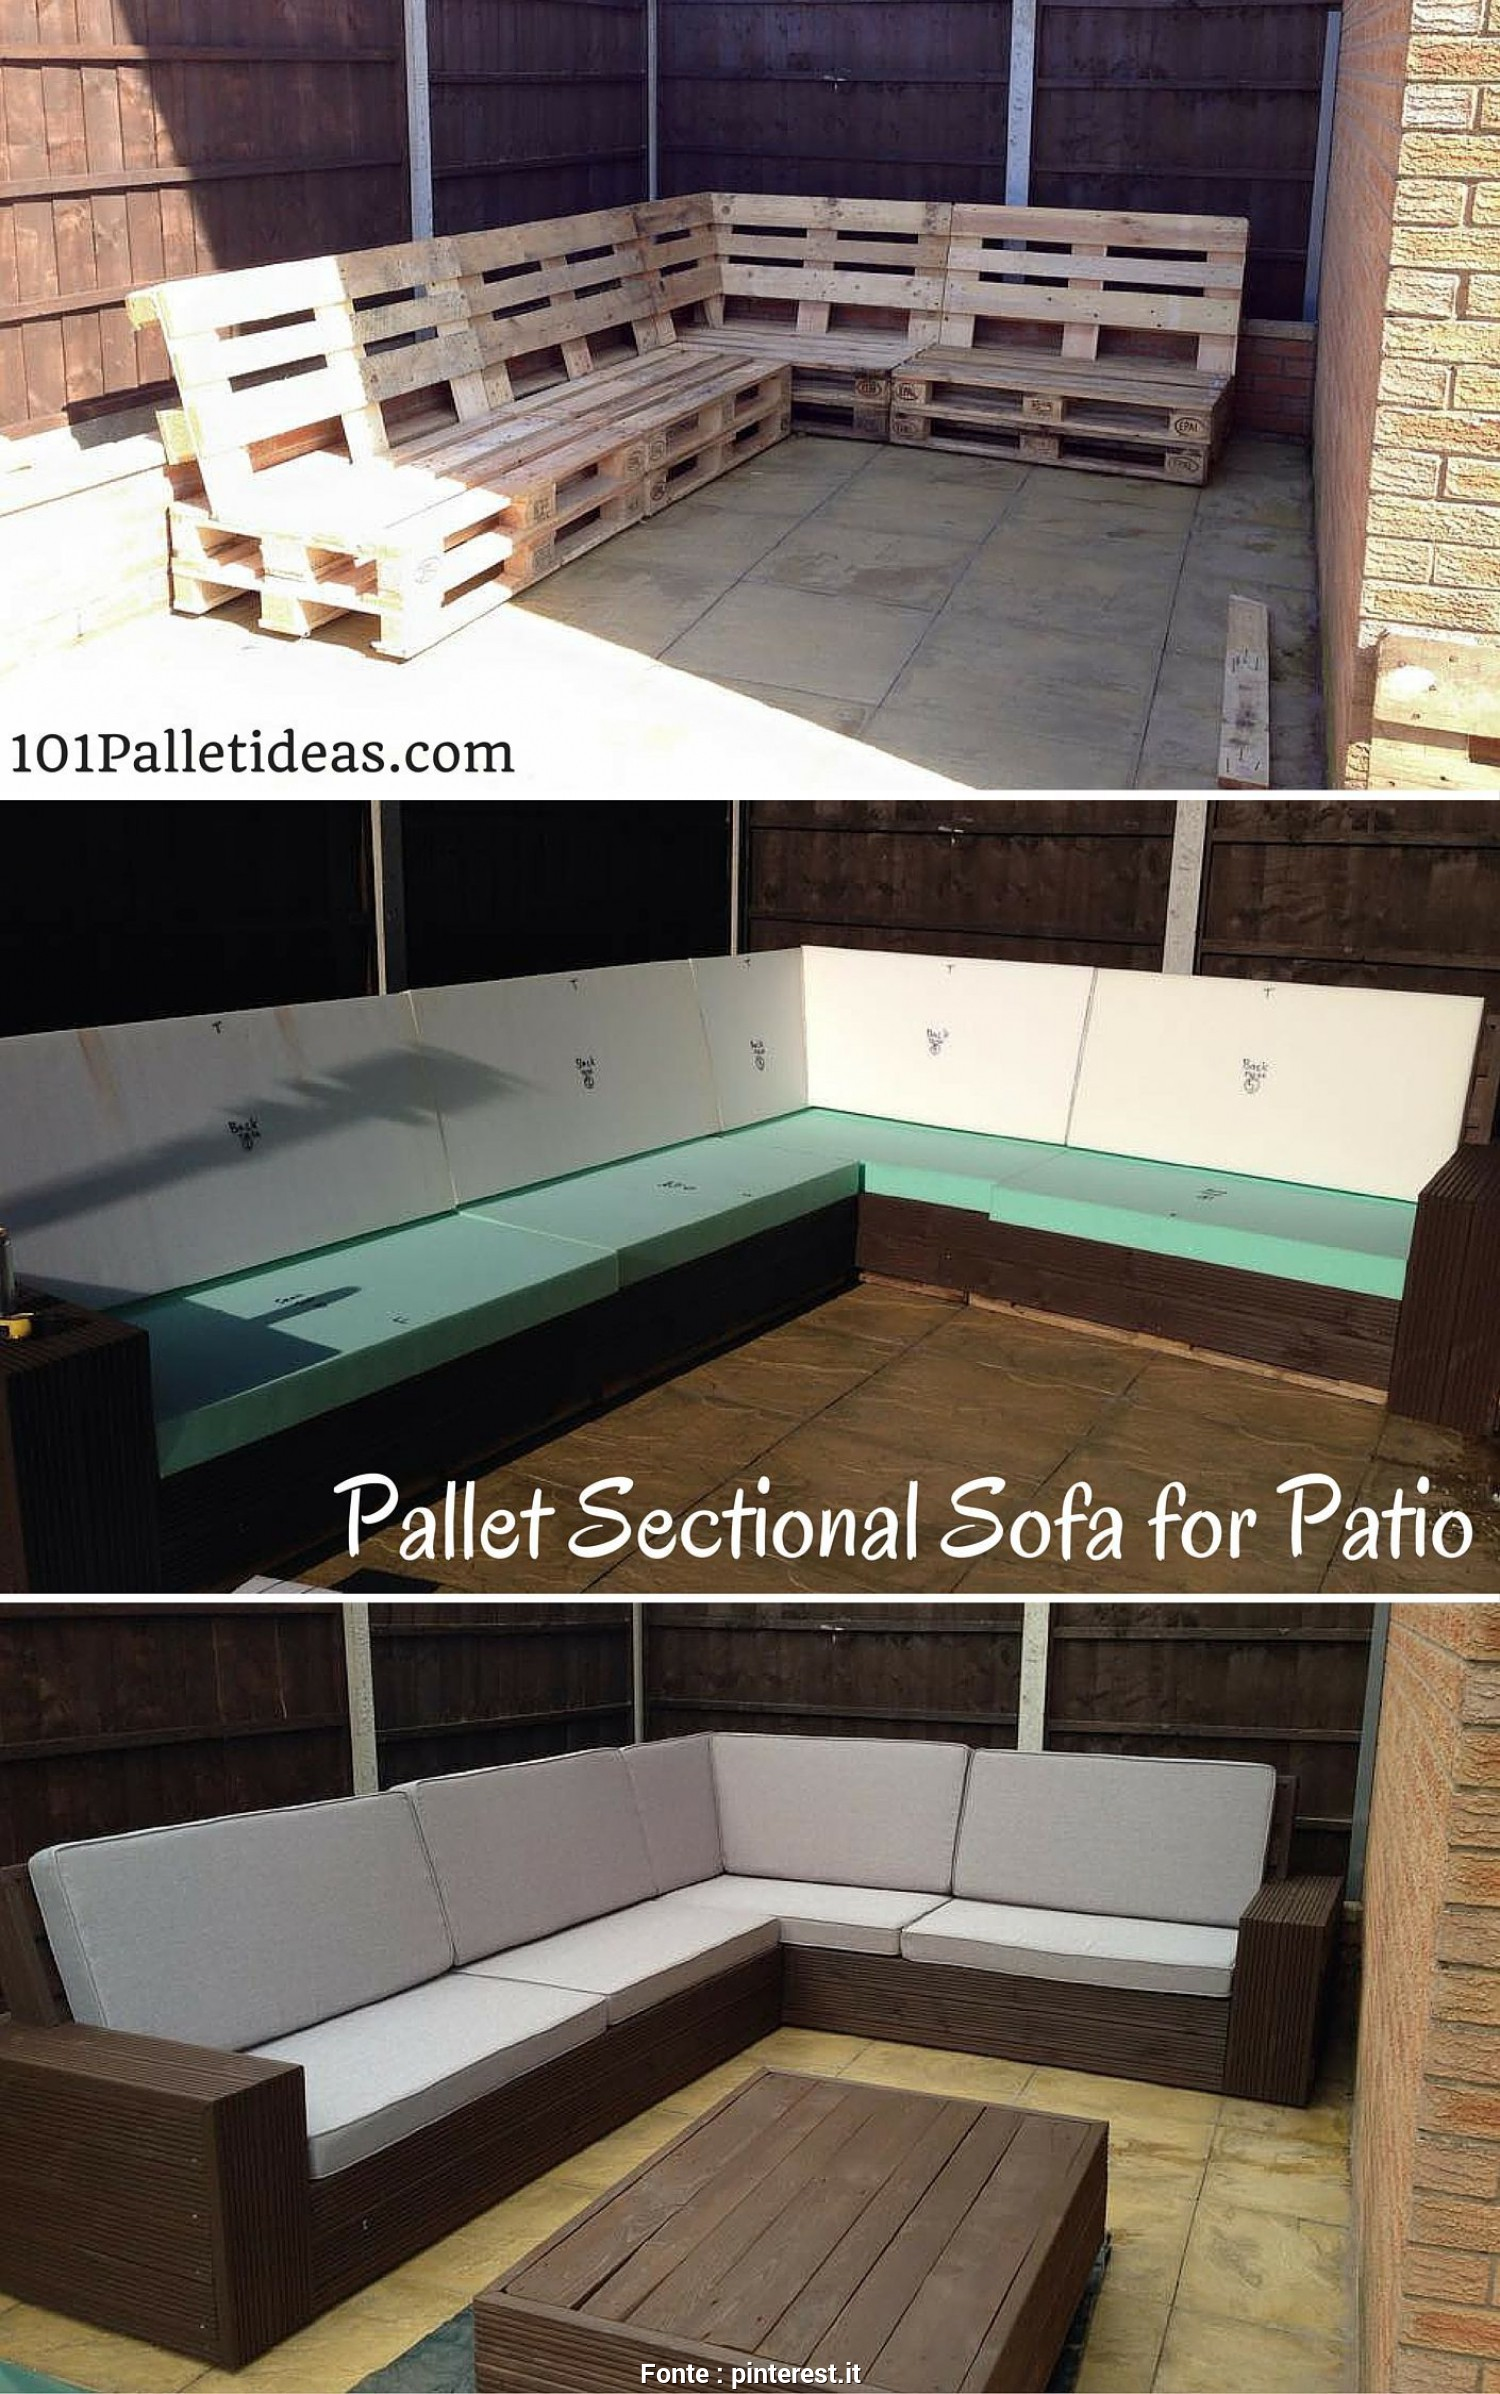 Divano Da Giardino Pallet, Sbalorditivo DIY #Pallet Sectional #Sofa, Patio, Self-Installed 8-10 Seater, 1001 Pallet Ideas